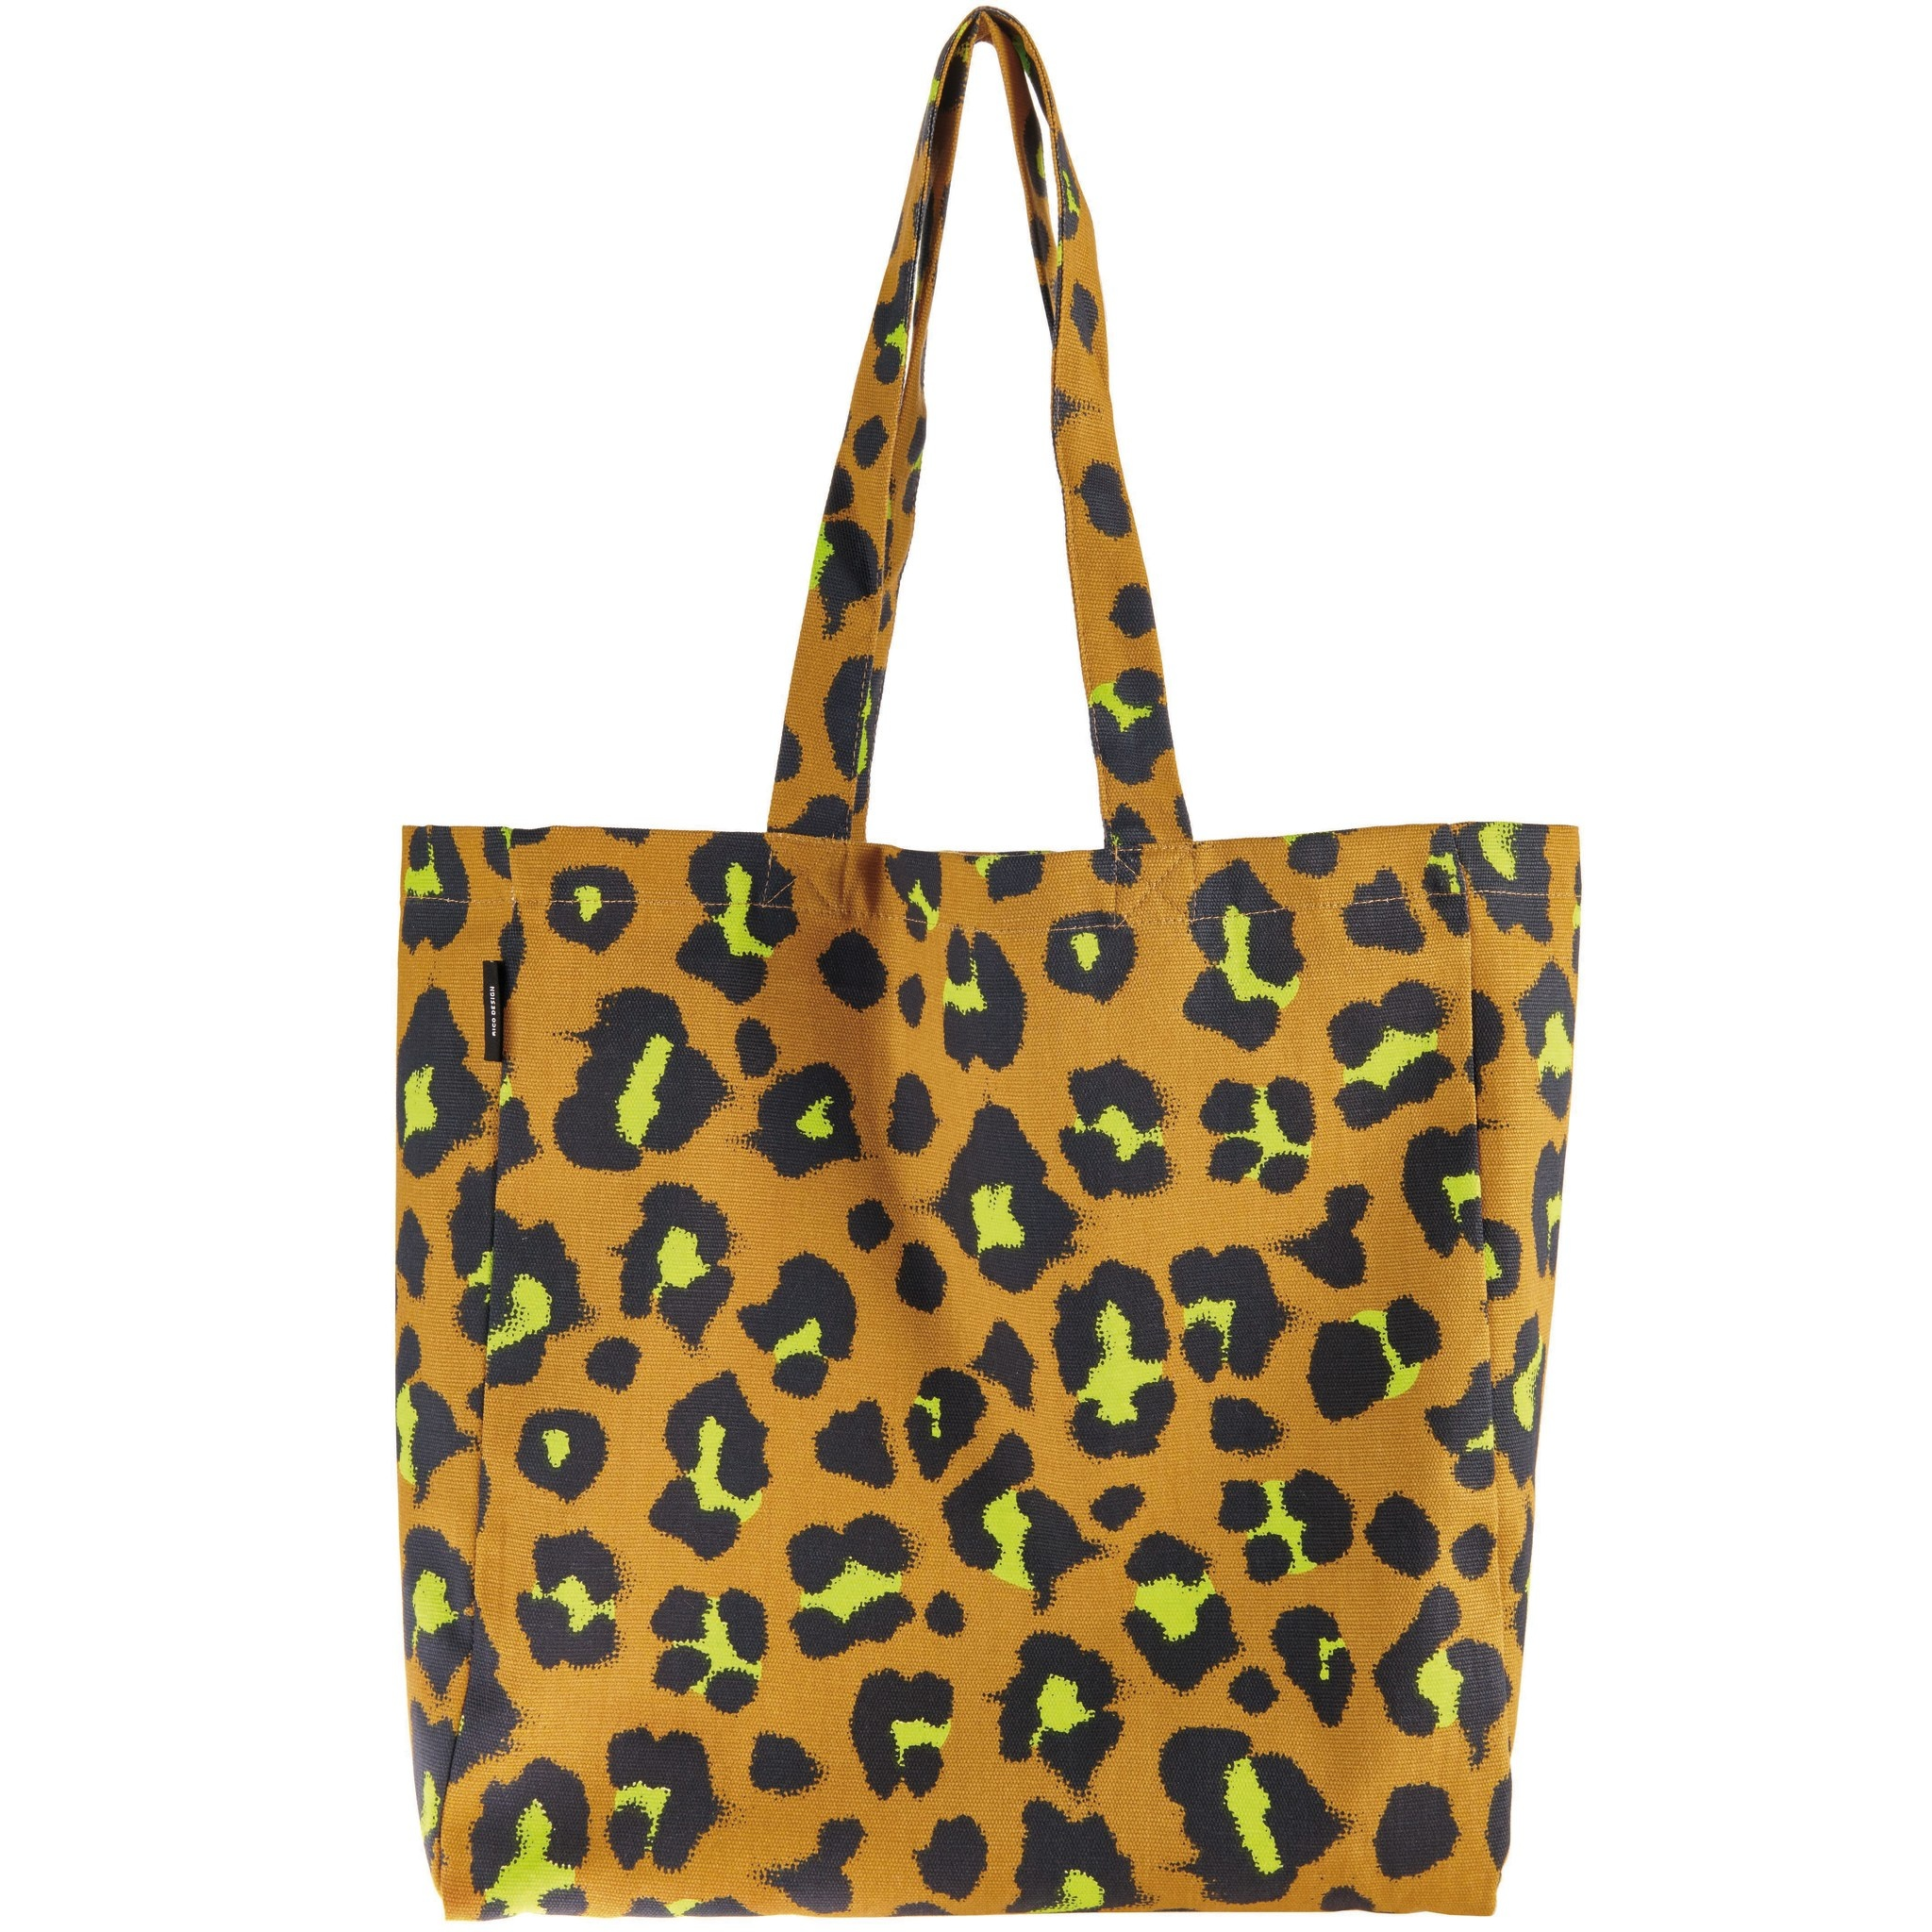 Rico NAY Canvas tote bag Acid Leo, caramell, 38x40x13cm, 100% cotton